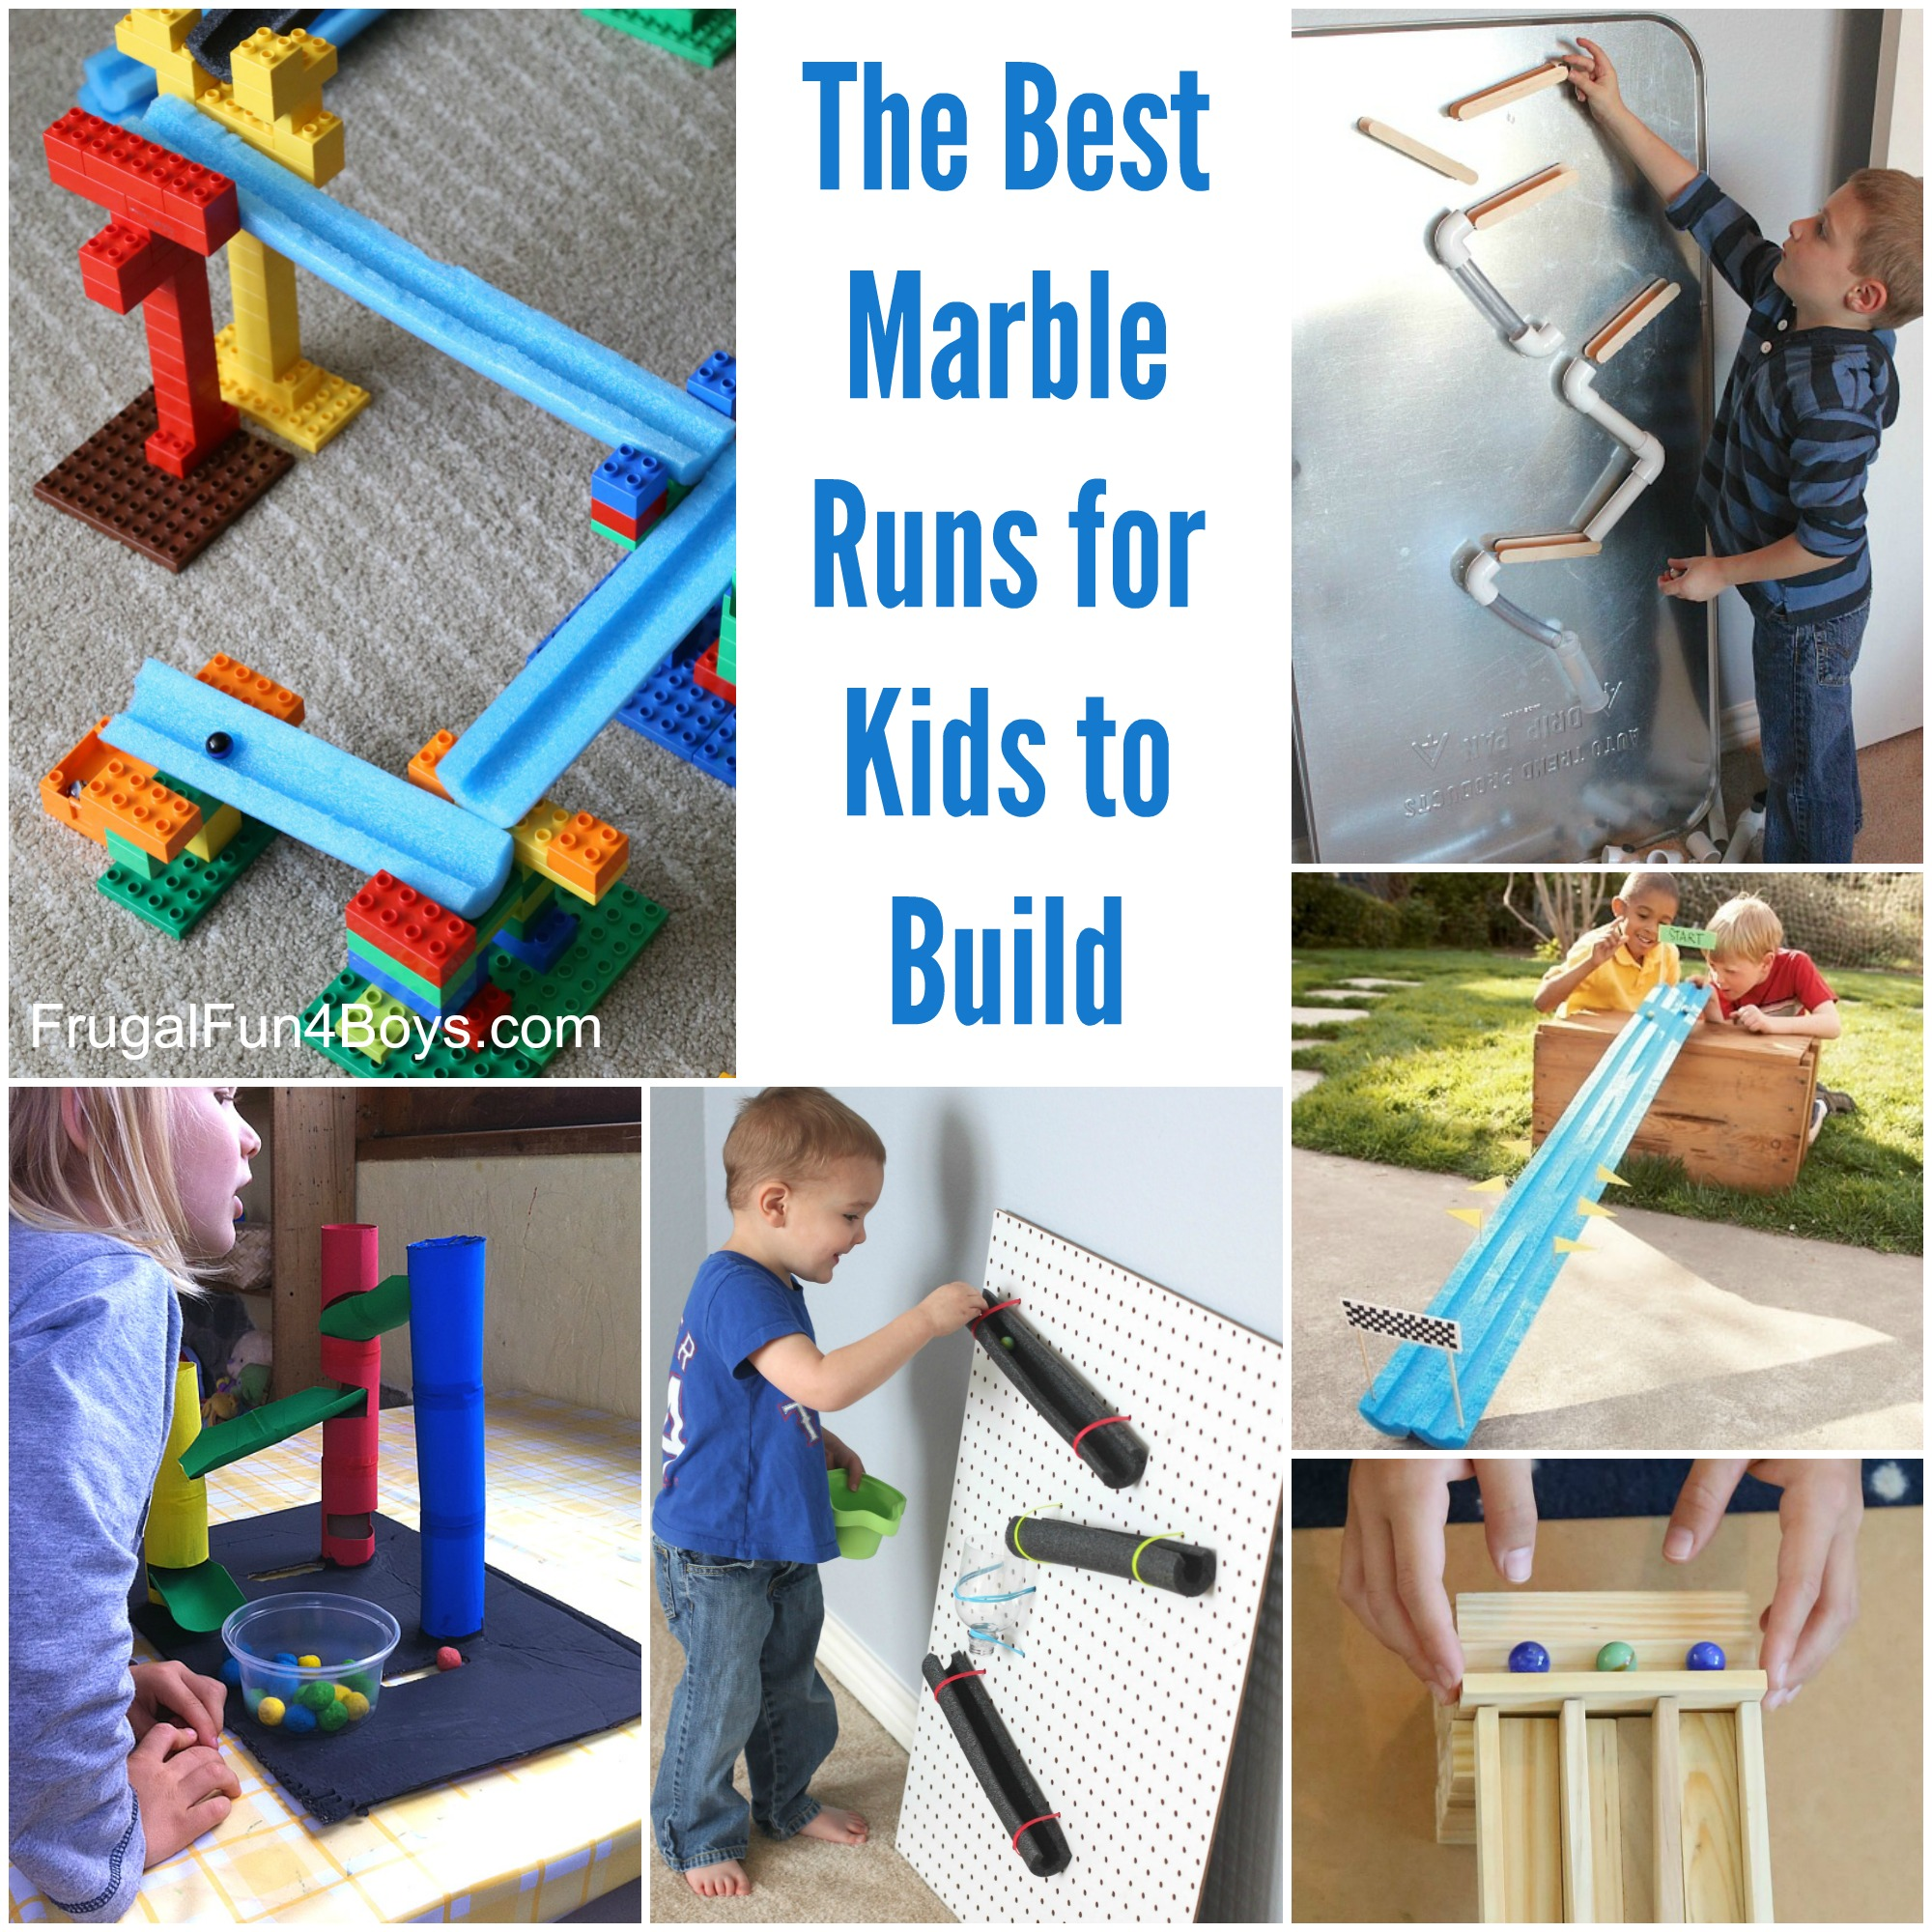 The BEST Marble Runs for Kids to Build